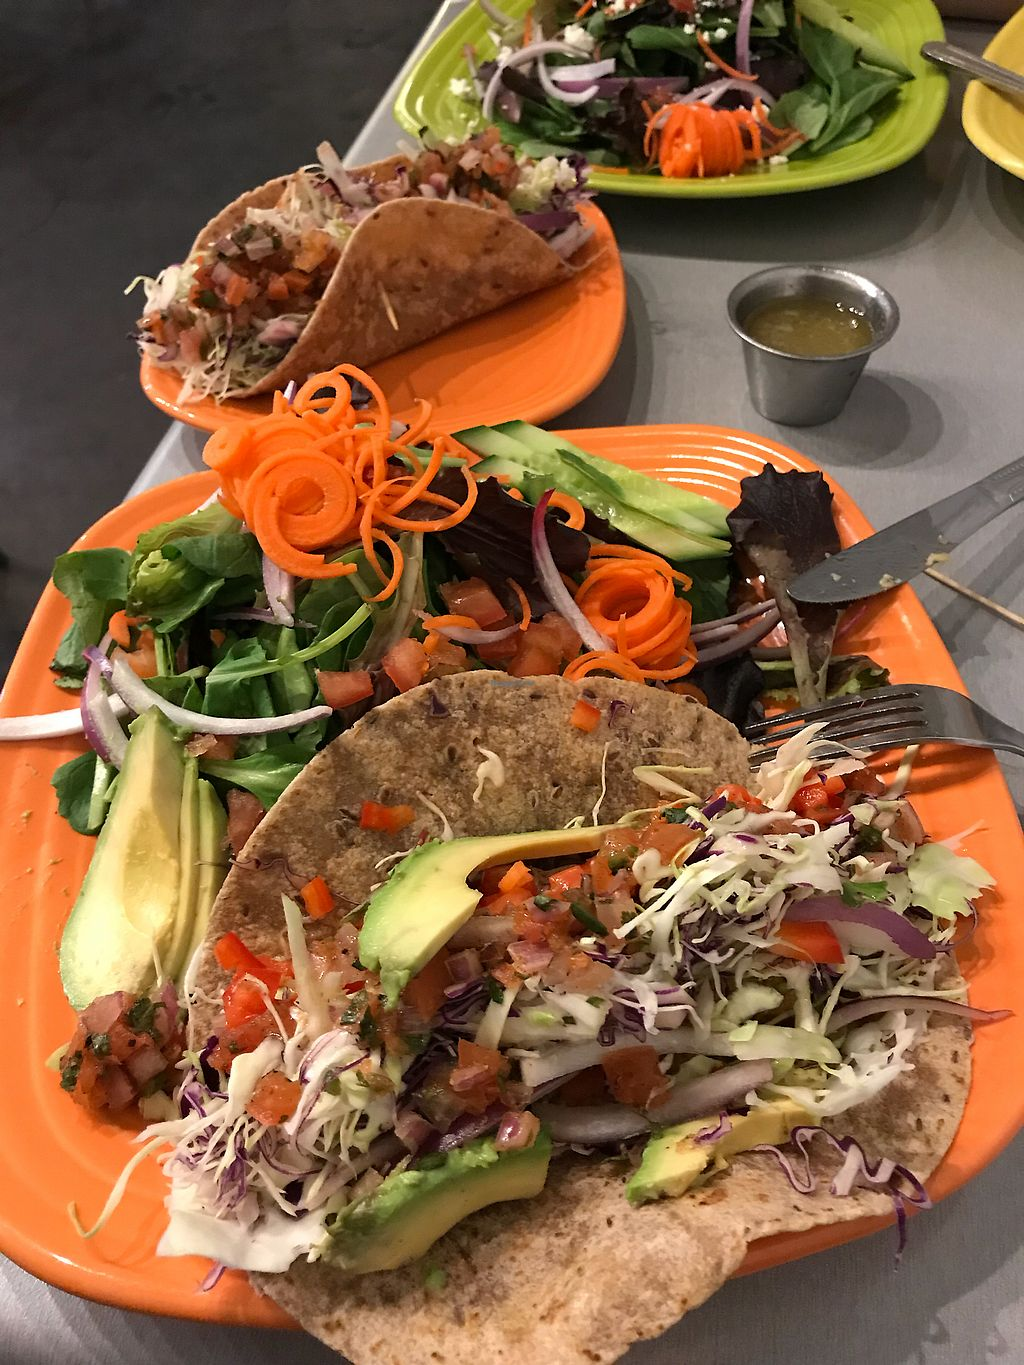 "Photo of Lotus Leaf Cafe  by <a href=""/members/profile/JohnM."">JohnM.</a> <br/>Tacos  <br/> February 3, 2018  - <a href='/contact/abuse/image/27044/354595'>Report</a>"